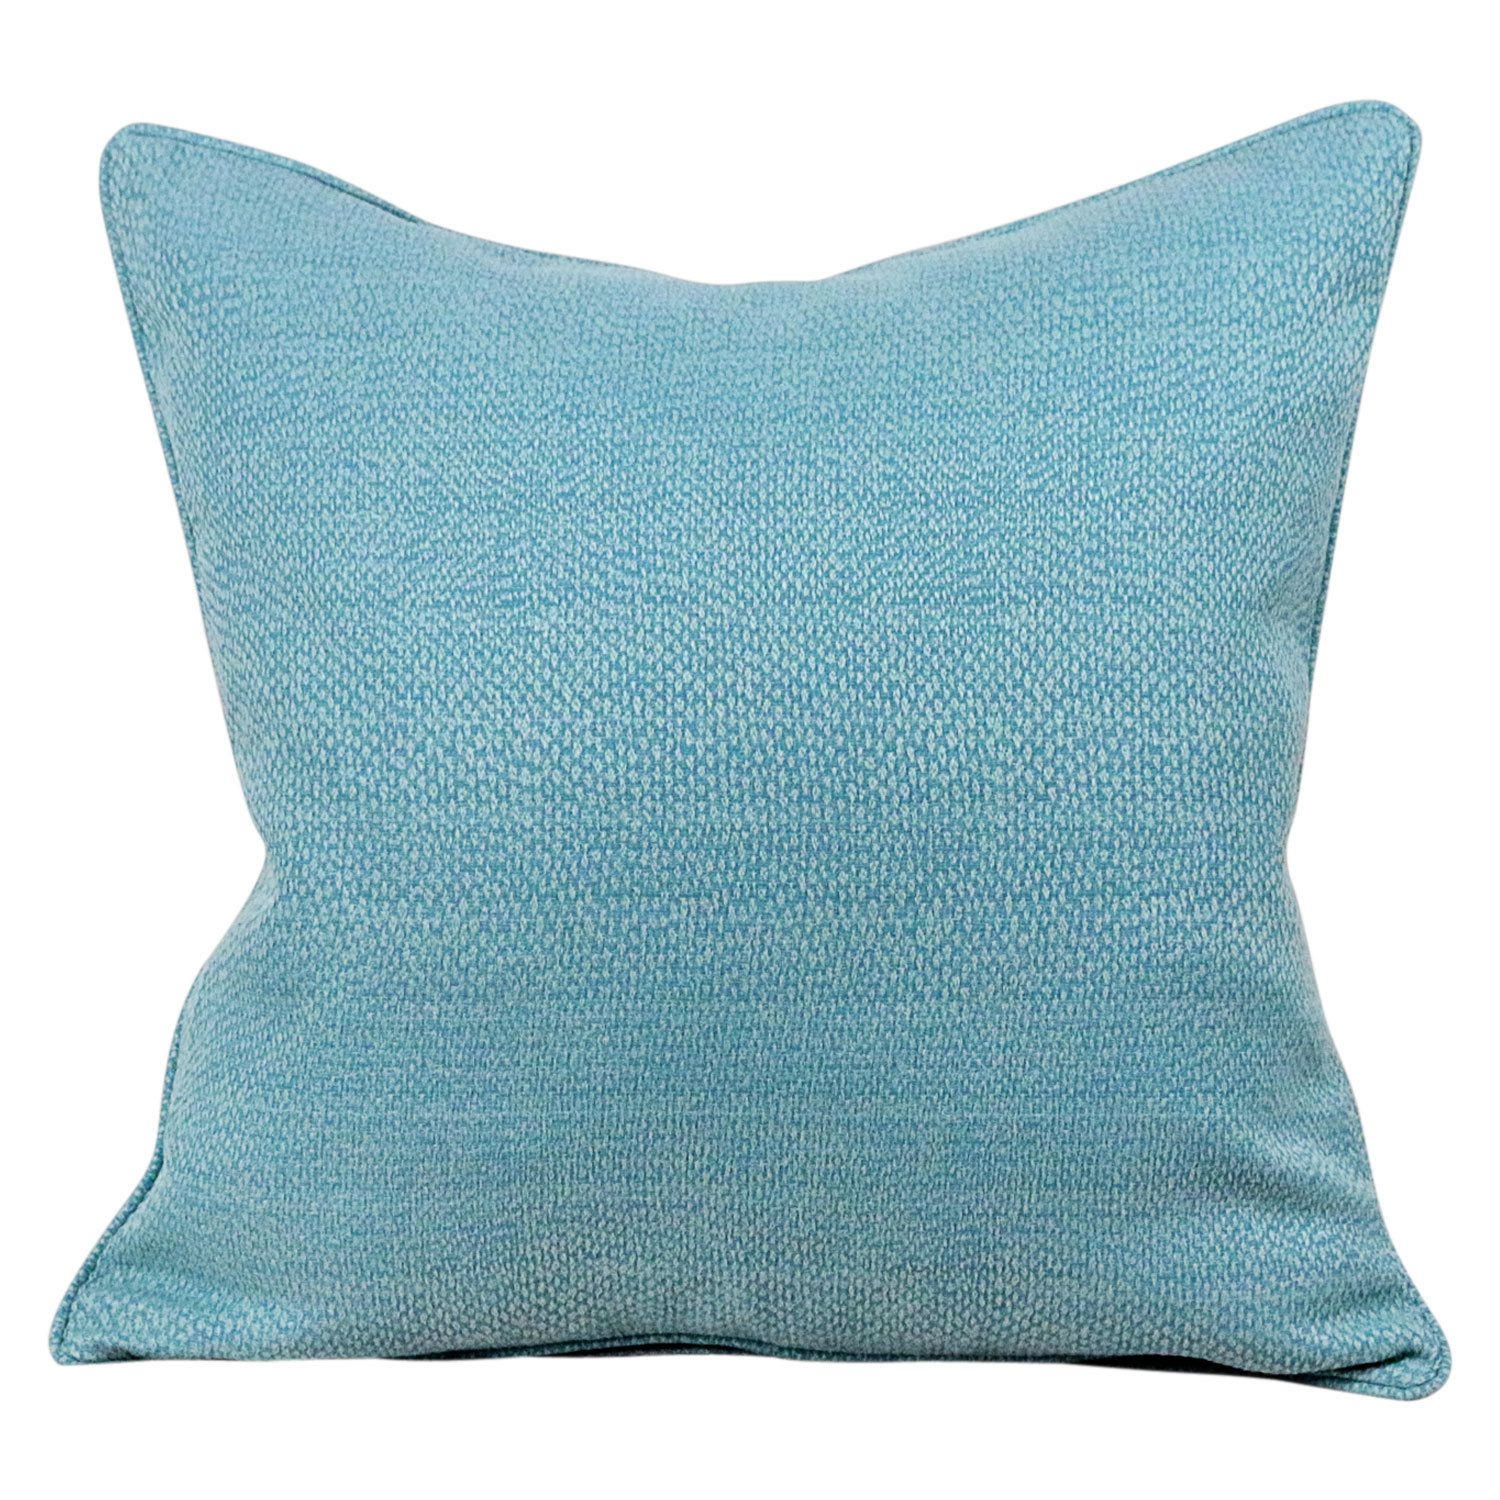 Tiffany Blue Pebble Textured Decorative Pillow Lumbar Pillow Cover by BBFabric on Etsy